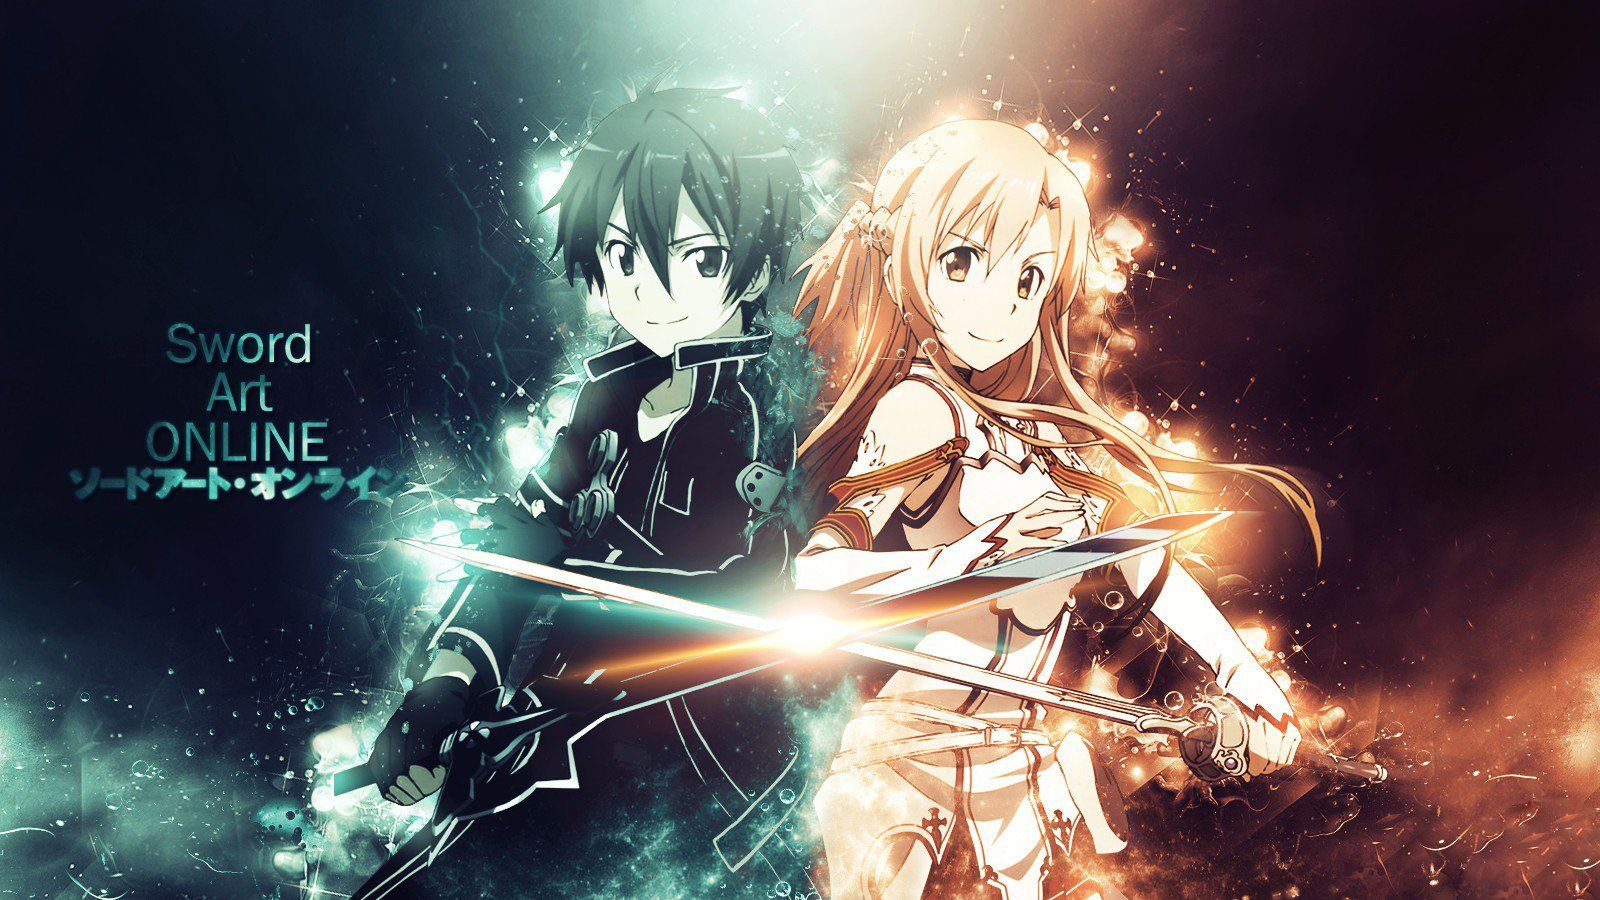 Sword Art Online Wallpapers - Top Free Sword Art Online